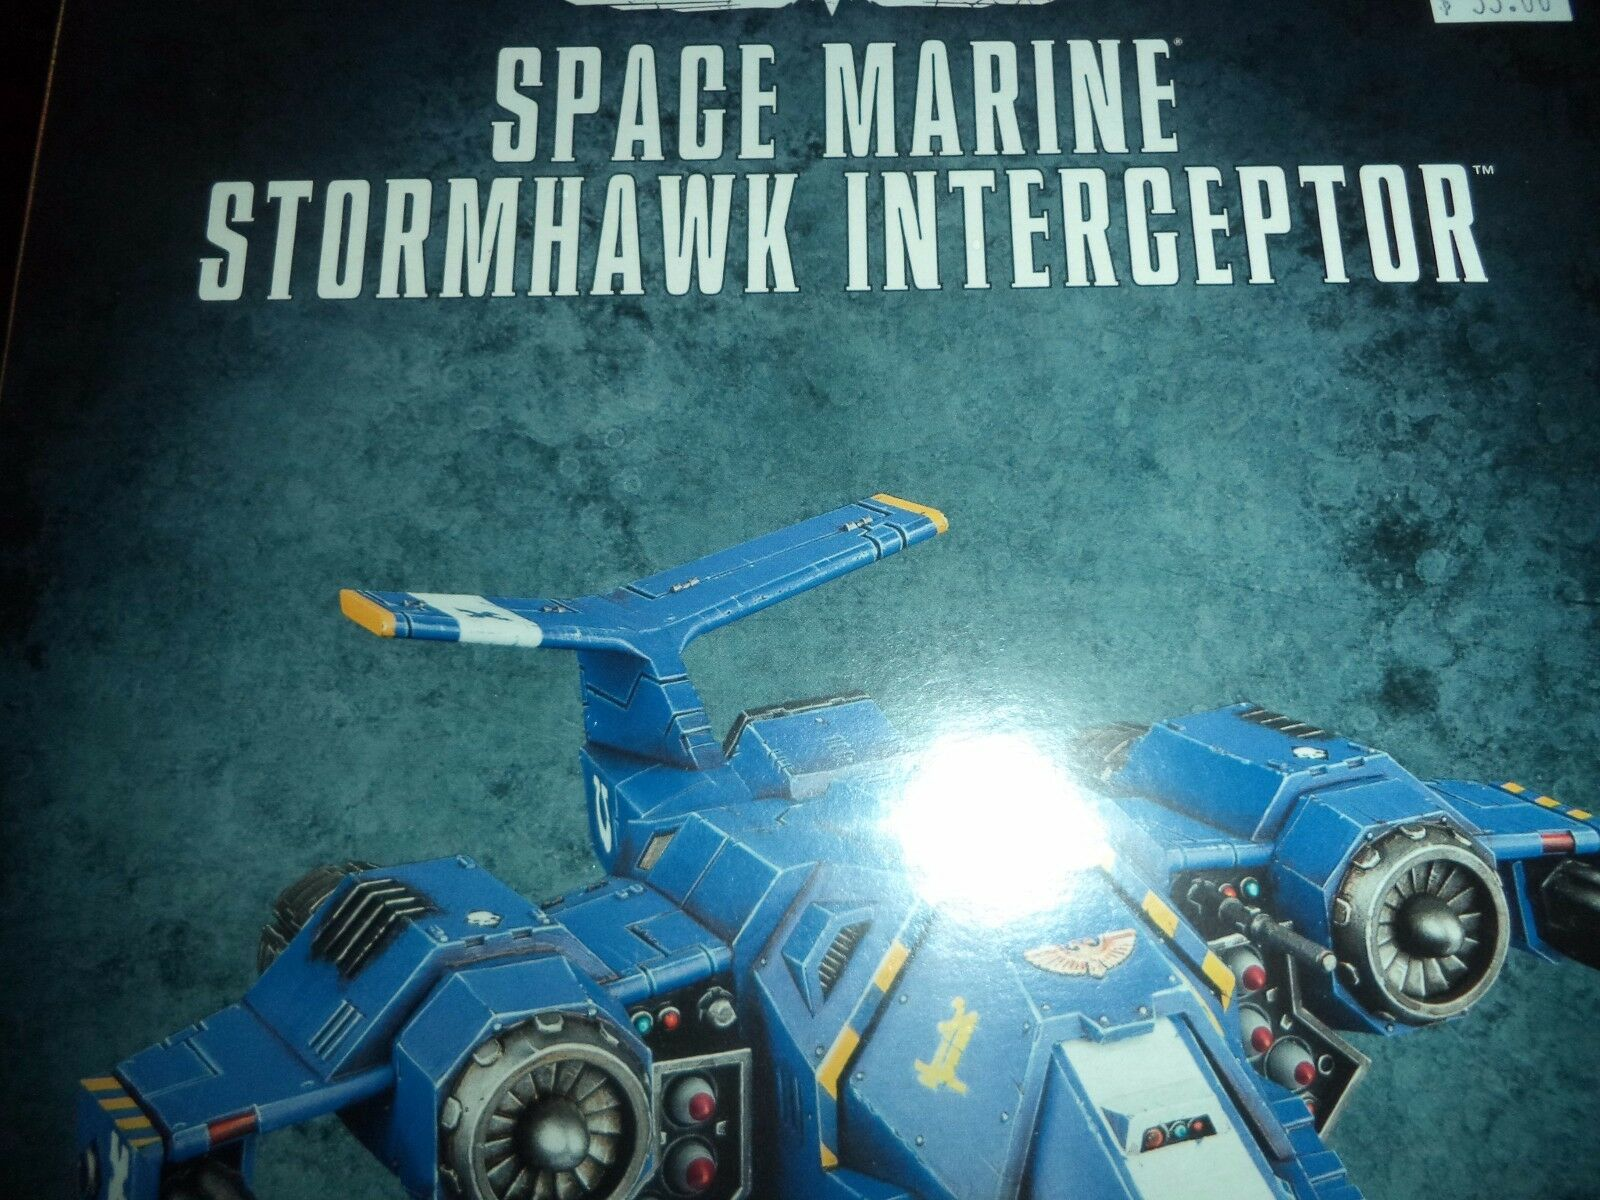 Stormhawk Interceptor Stormtalon Gunship Space Marines - Warhammer 40k 40,000